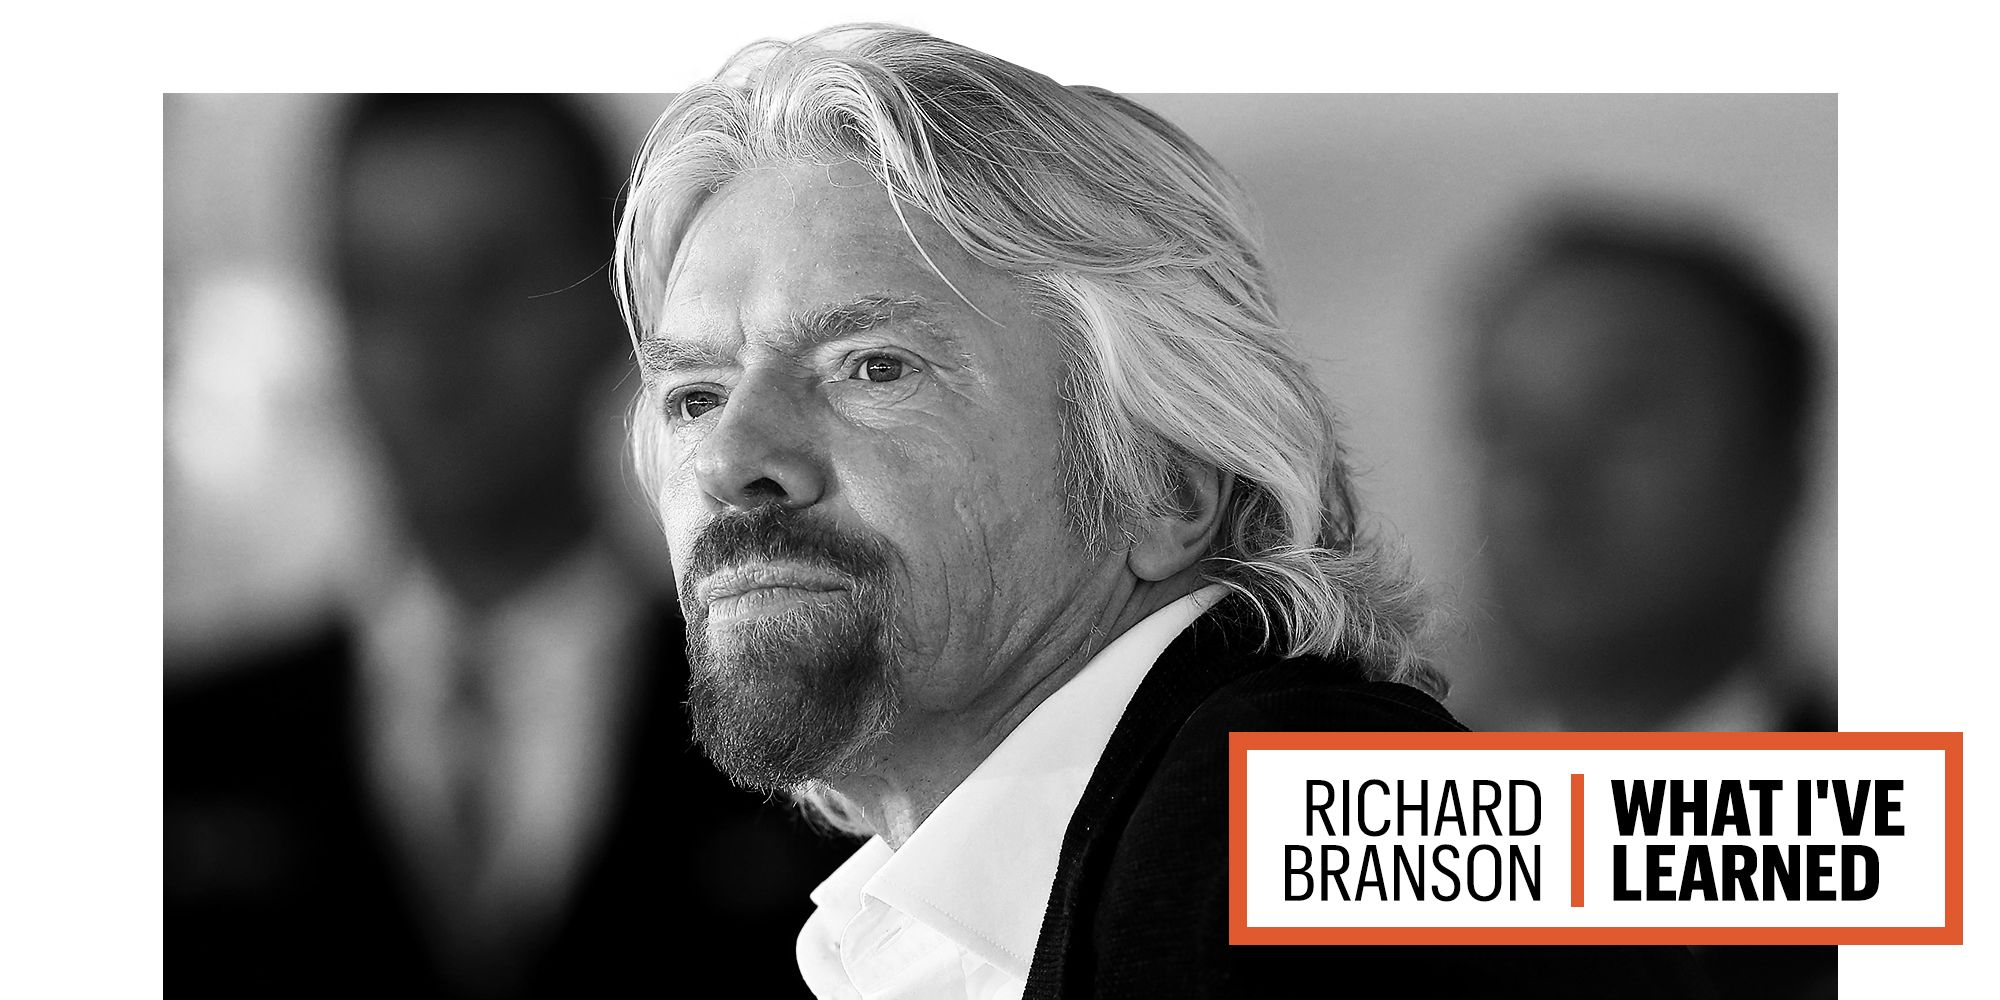 Richard Branson Interview - Quotes about Virgin Atlantic and Virgin ...